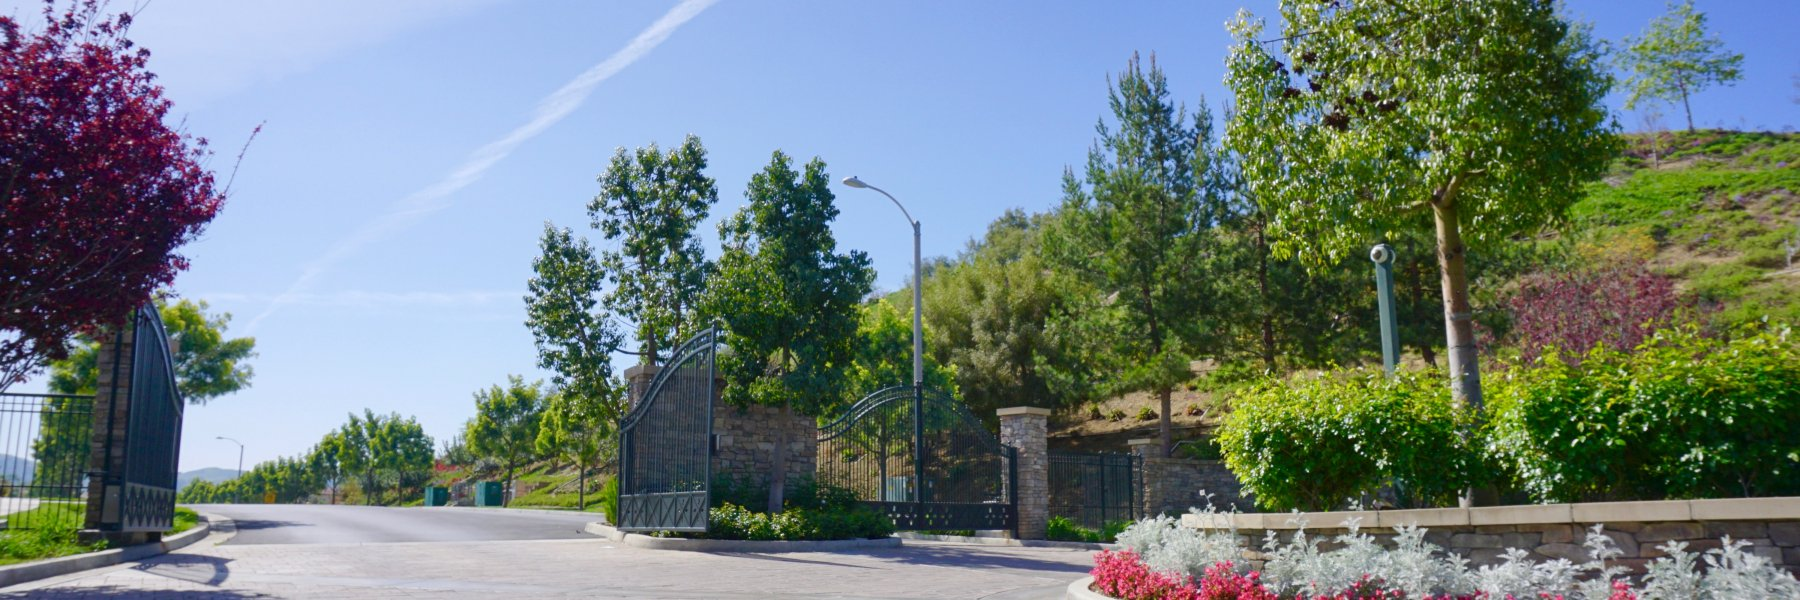 Pine Valley Estates is a community of homes in Chino Hills California